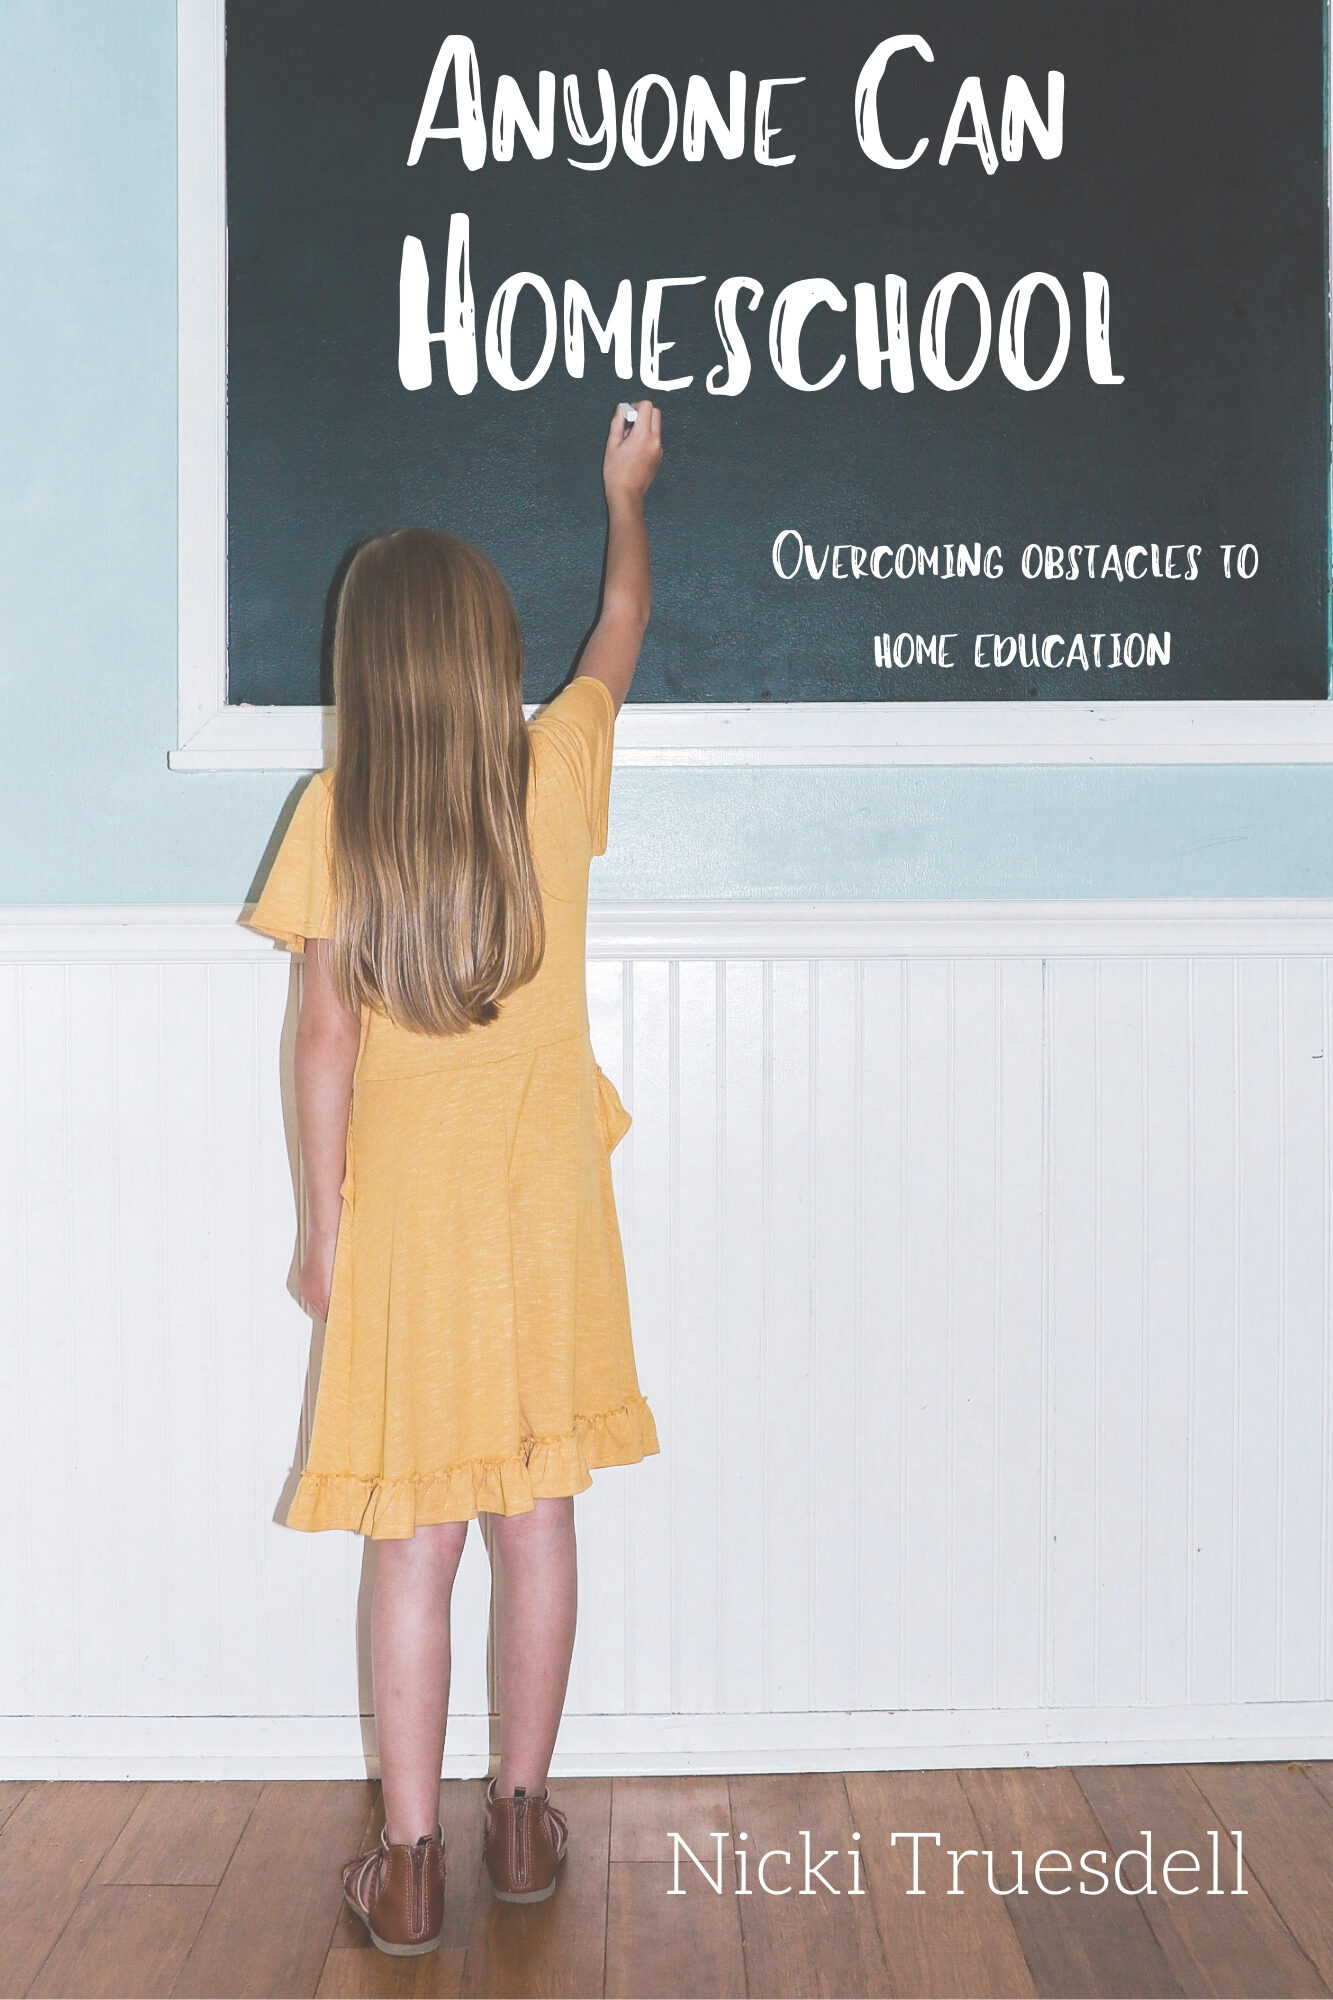 Anyone Can Homeschool by Nicki Truesdell